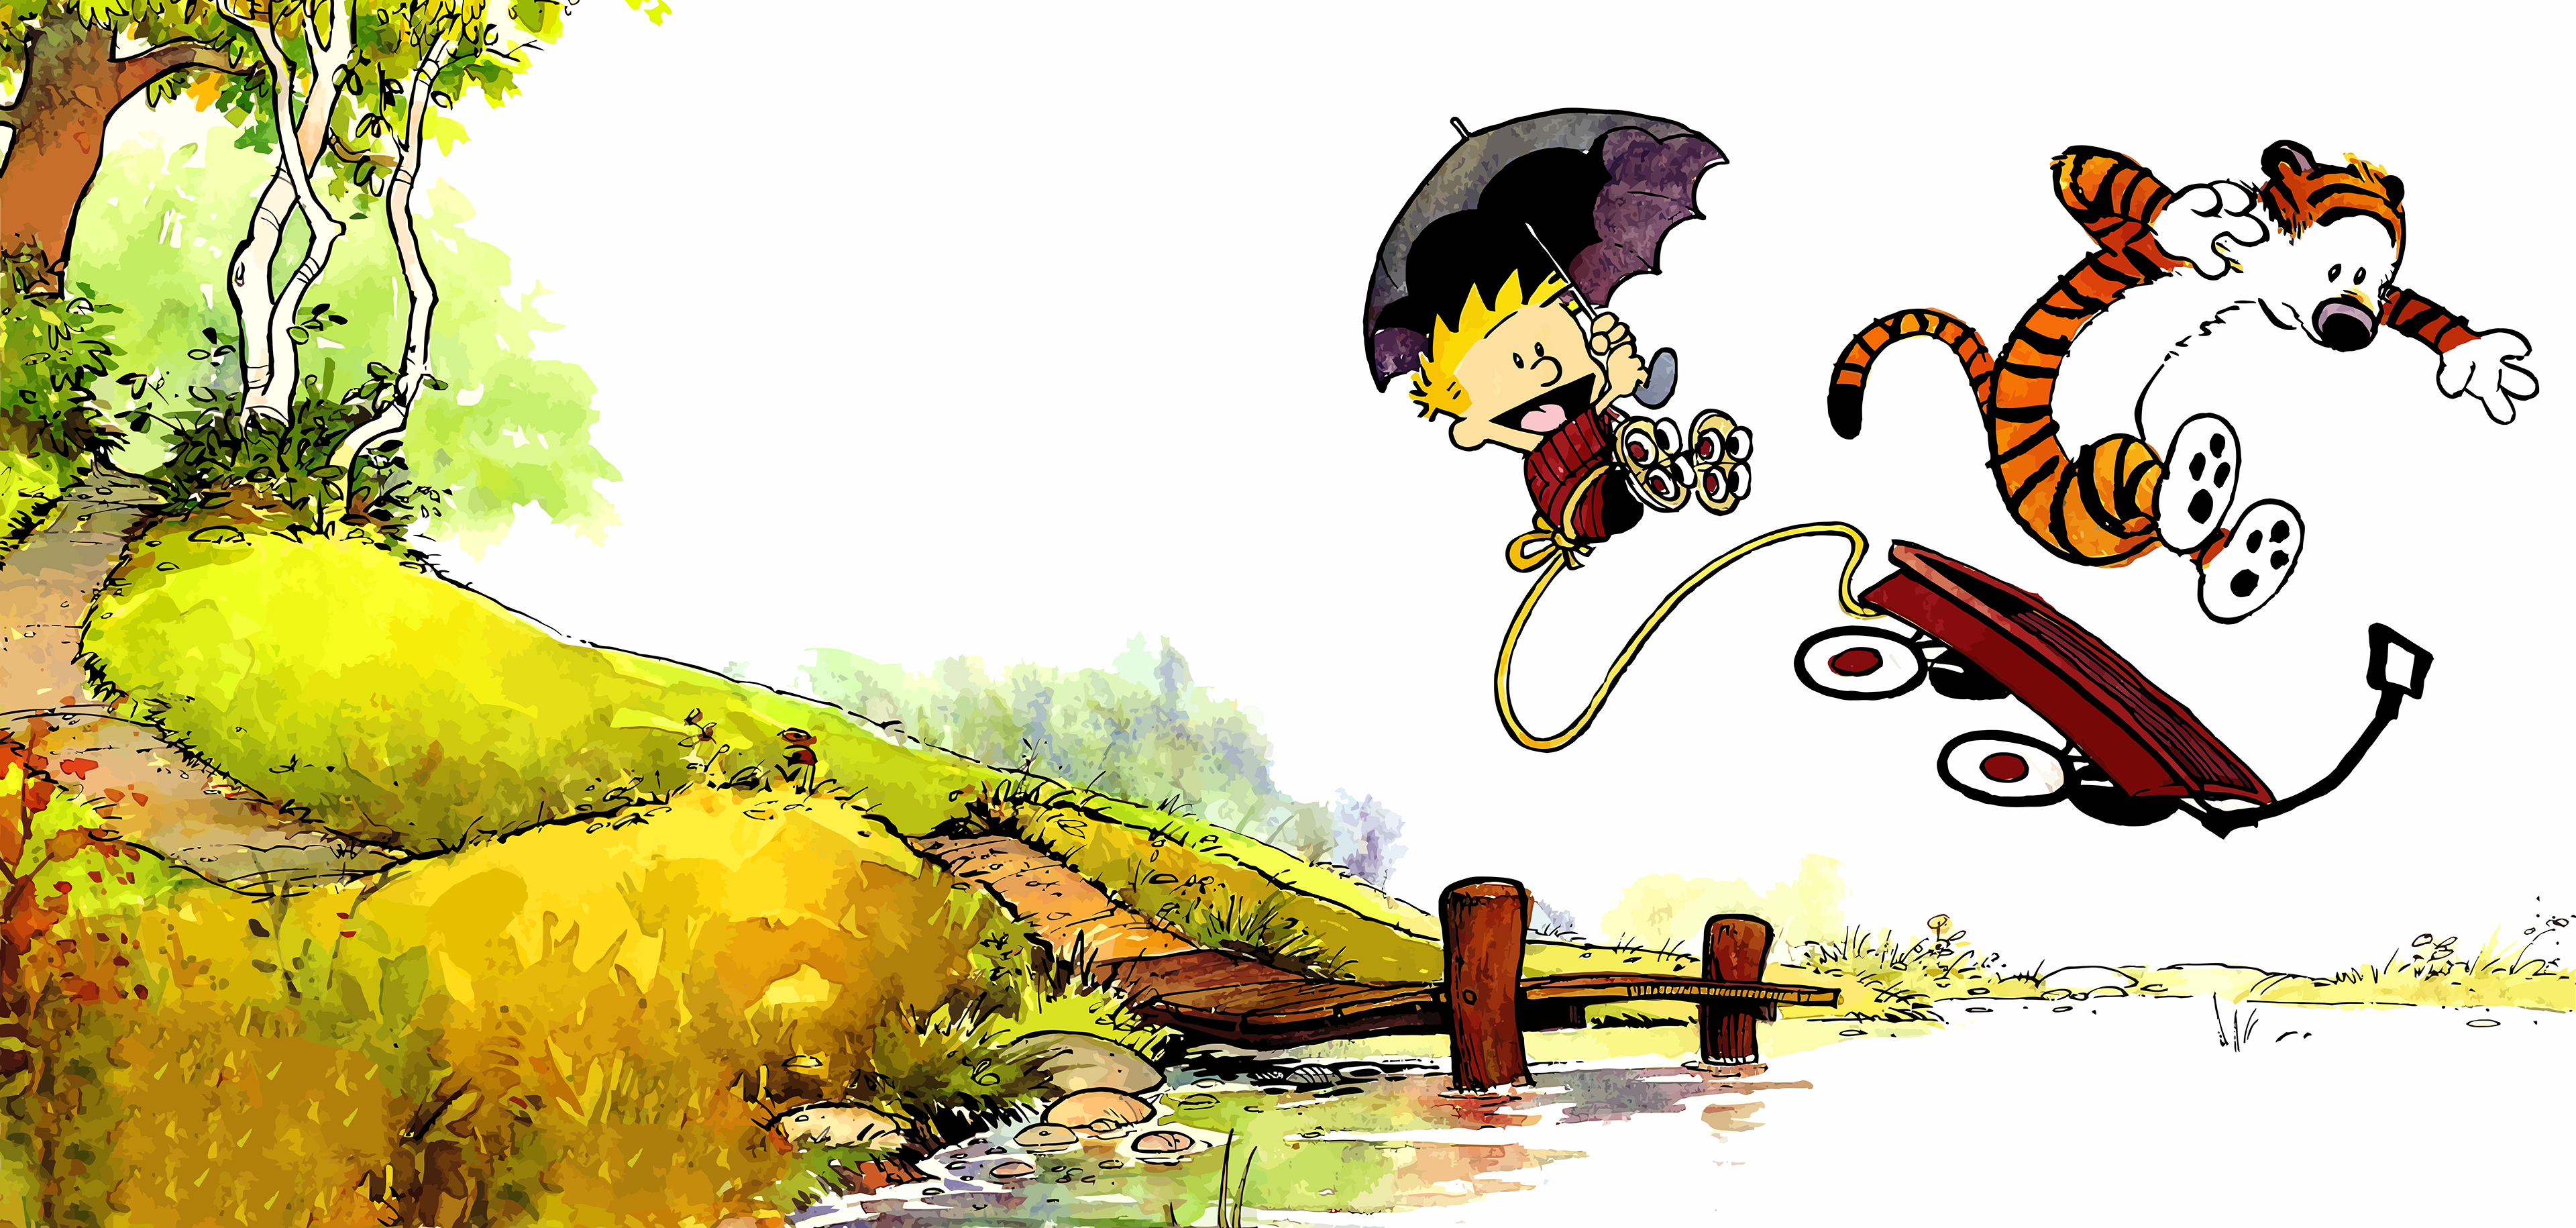 Calvin and Hobbes (book, front-back covers combined) 3840px × 1830px ...